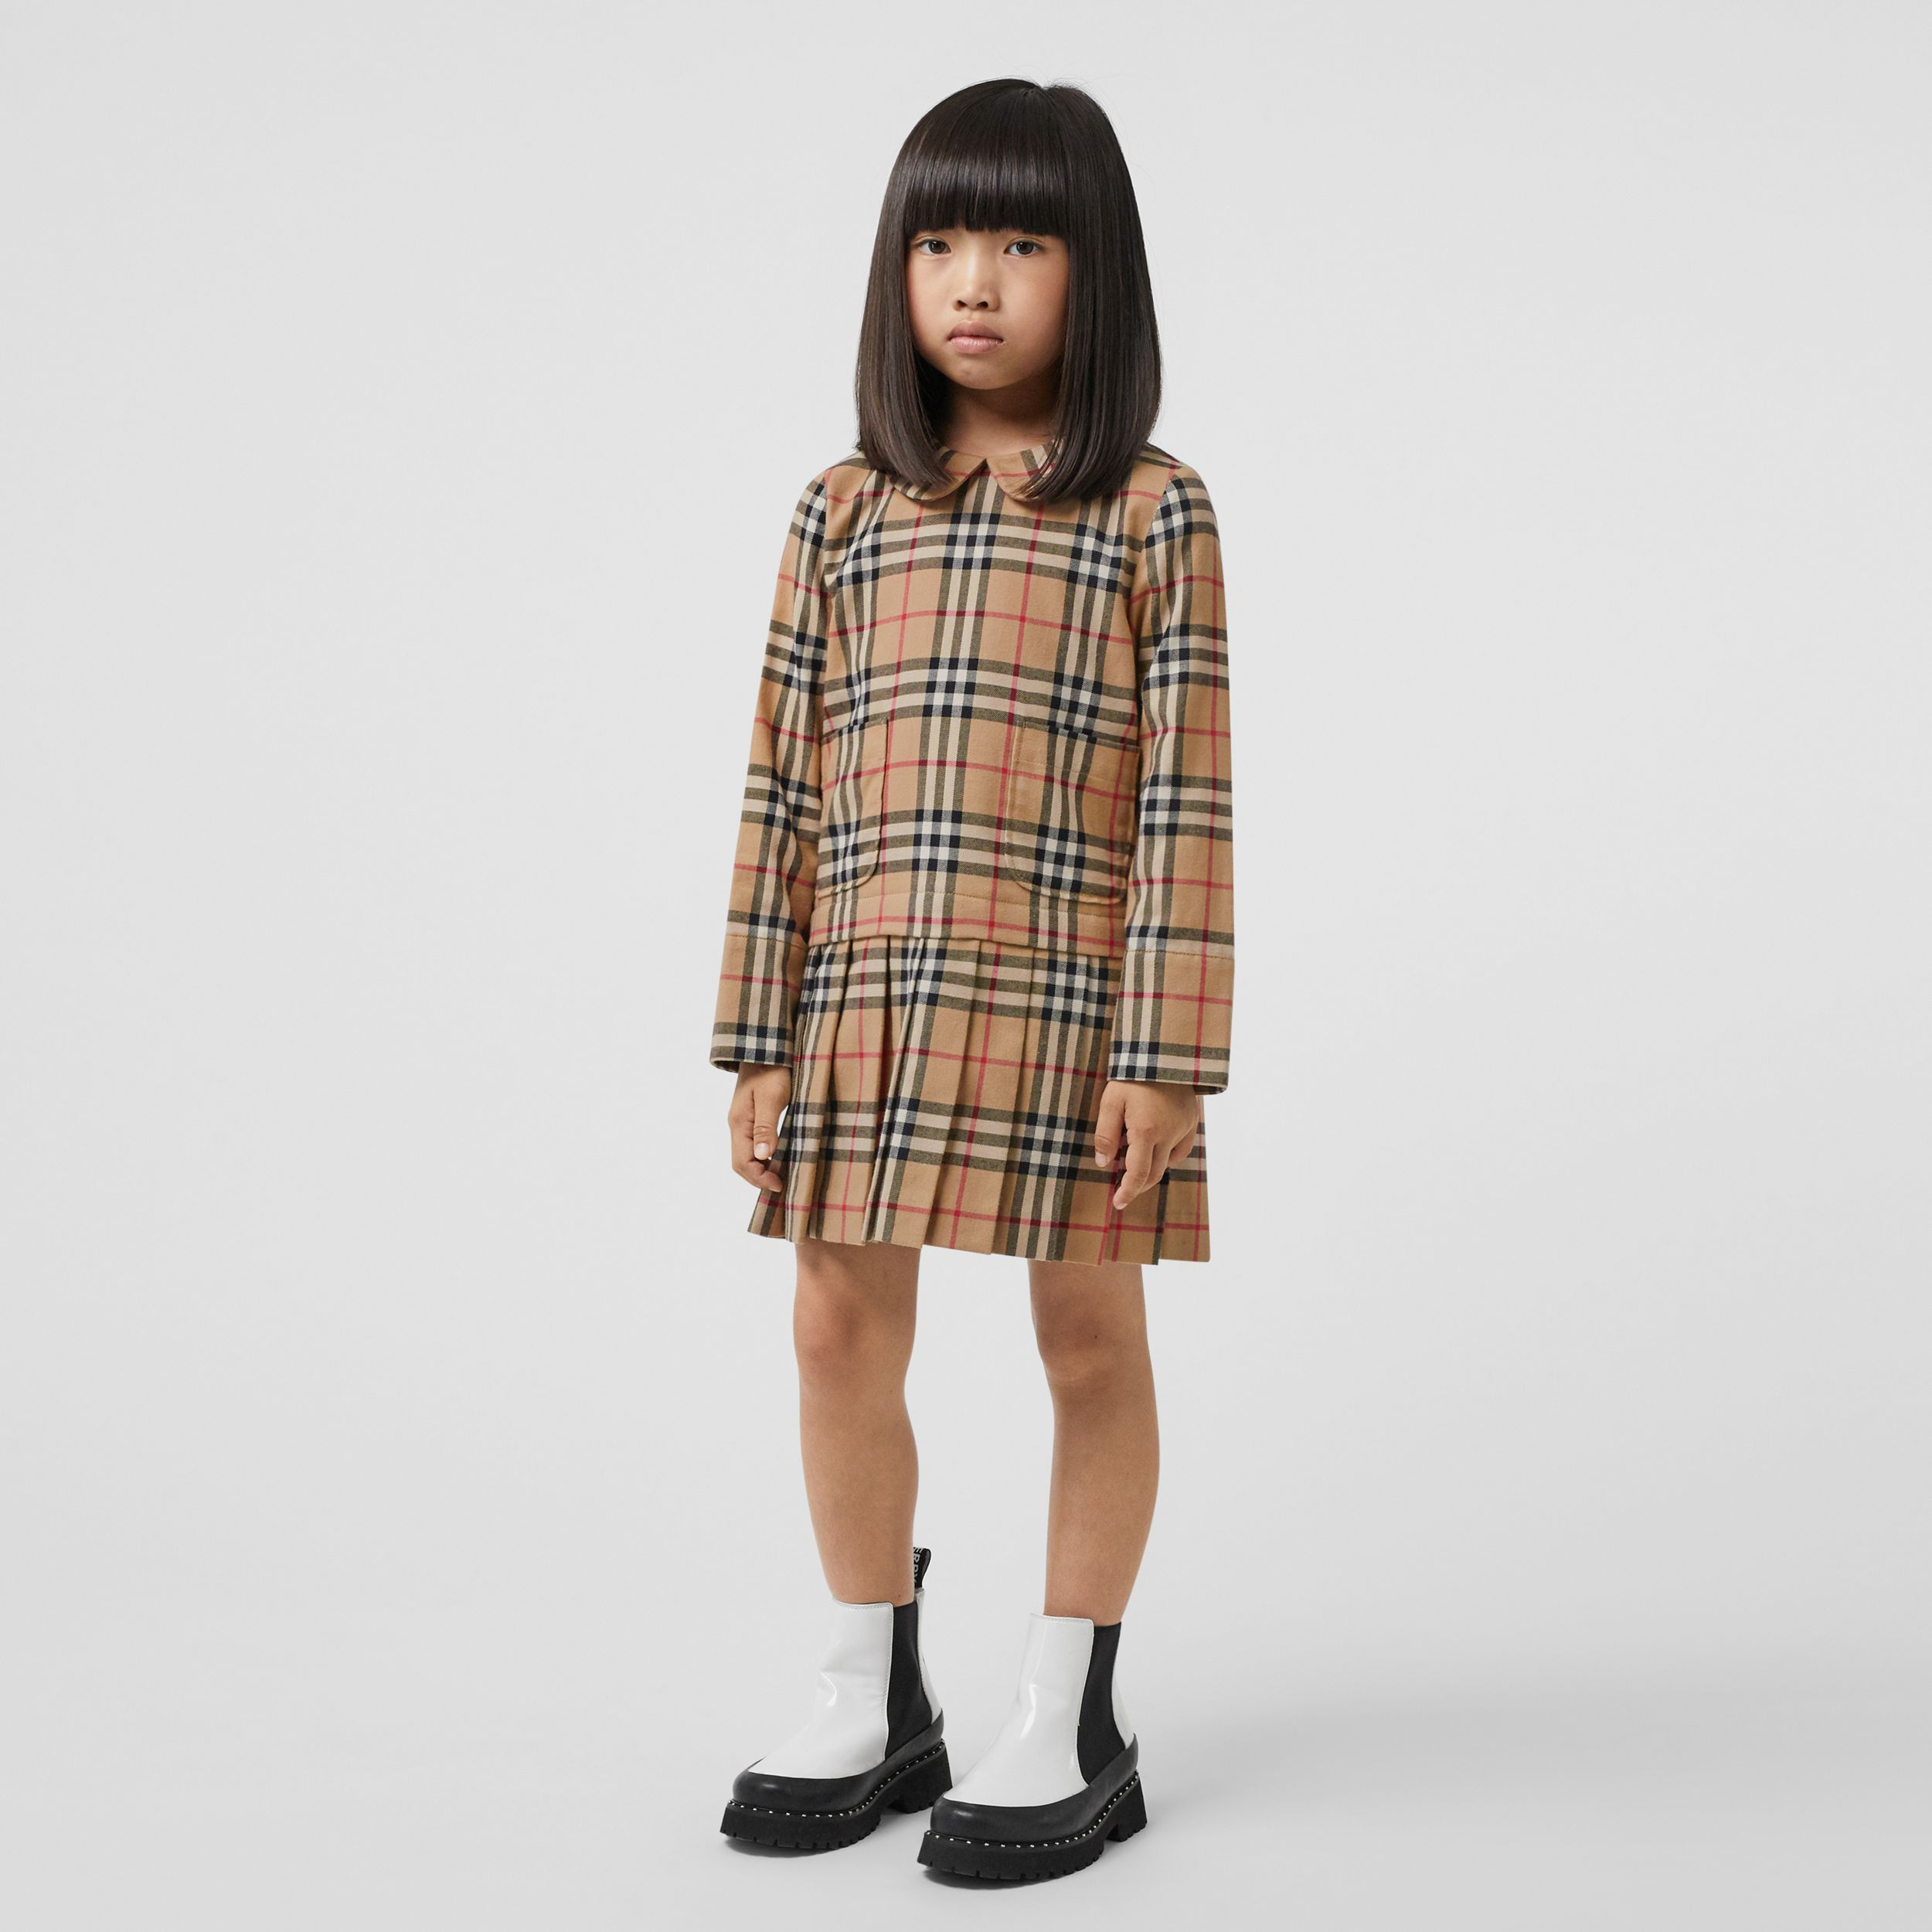 Peter Pan Collar Vintage Check Cotton Dress in Archive Beige | Burberry United Kingdom - 3